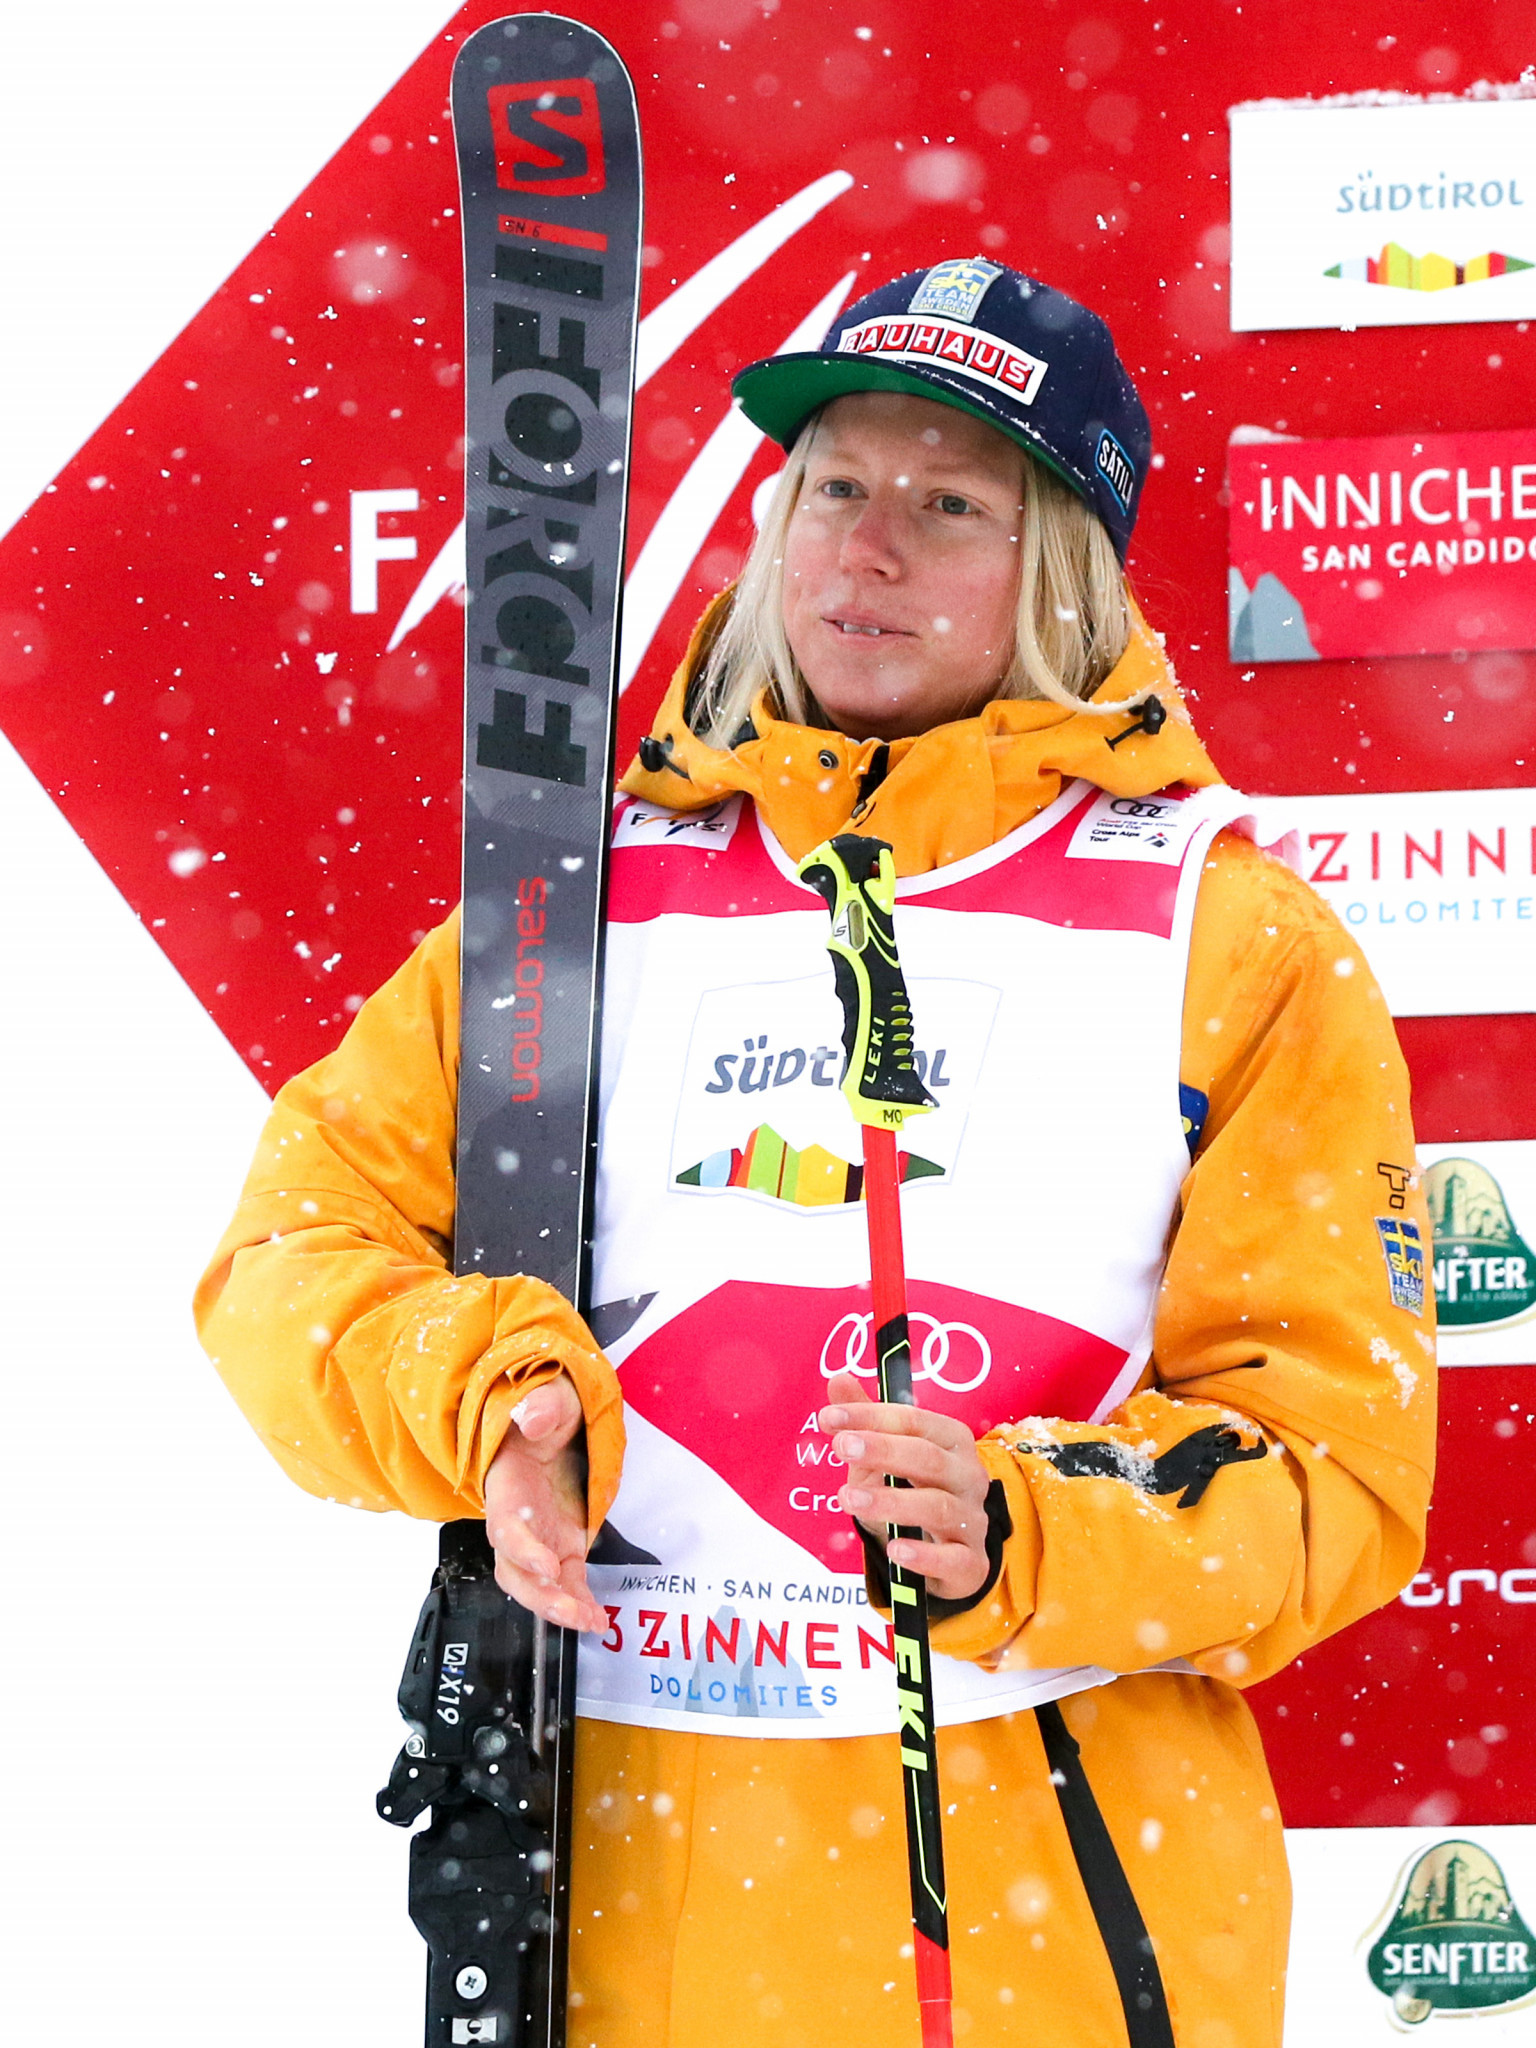 Näslund earns hat-trick of overall FIS Freestyle Ski Cross titles as Innichen World Cup cancelled